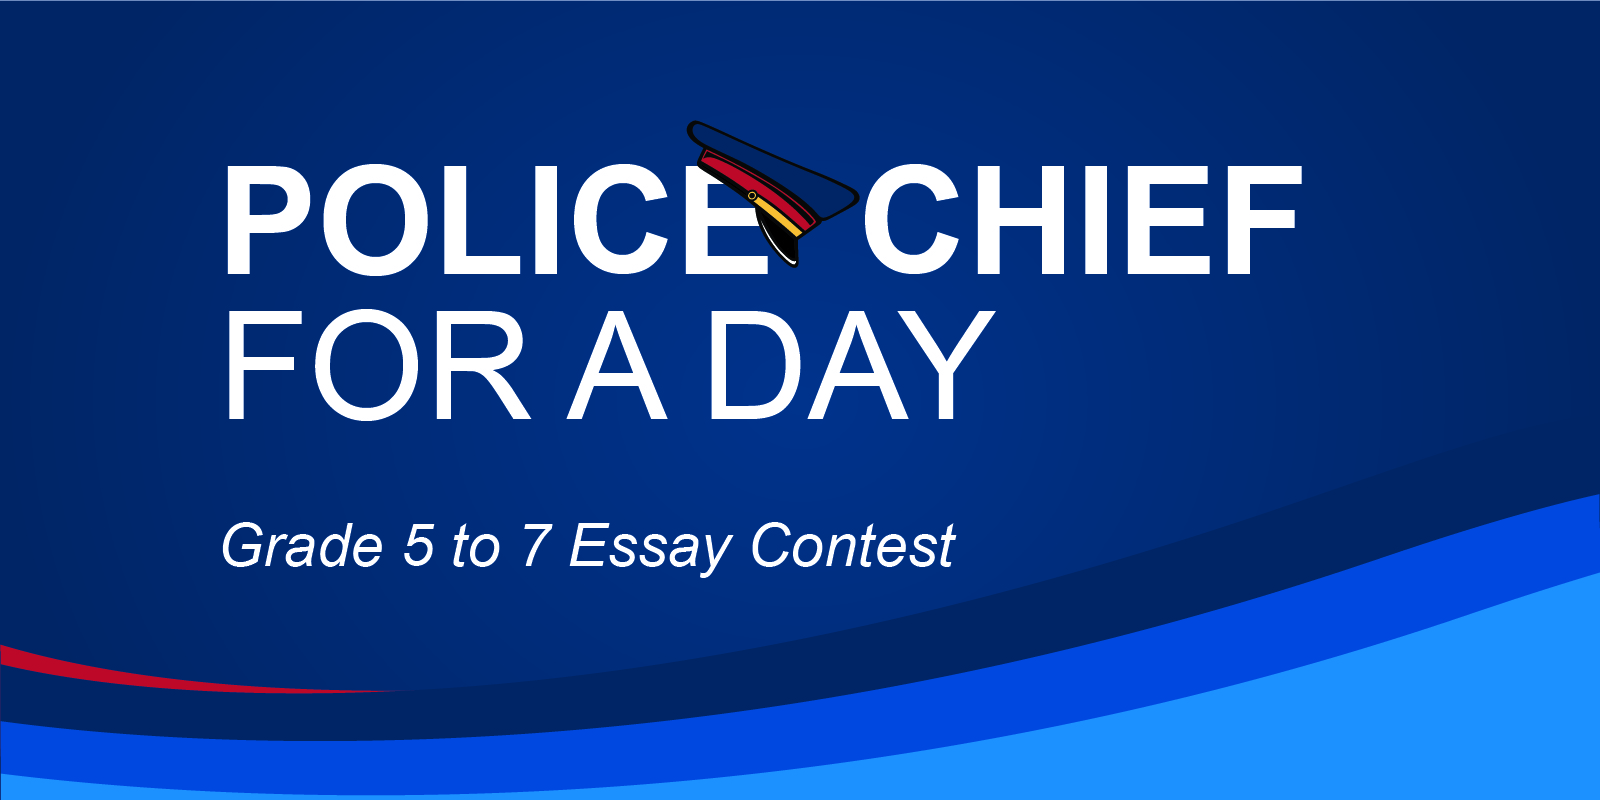 Police Chief for a Day